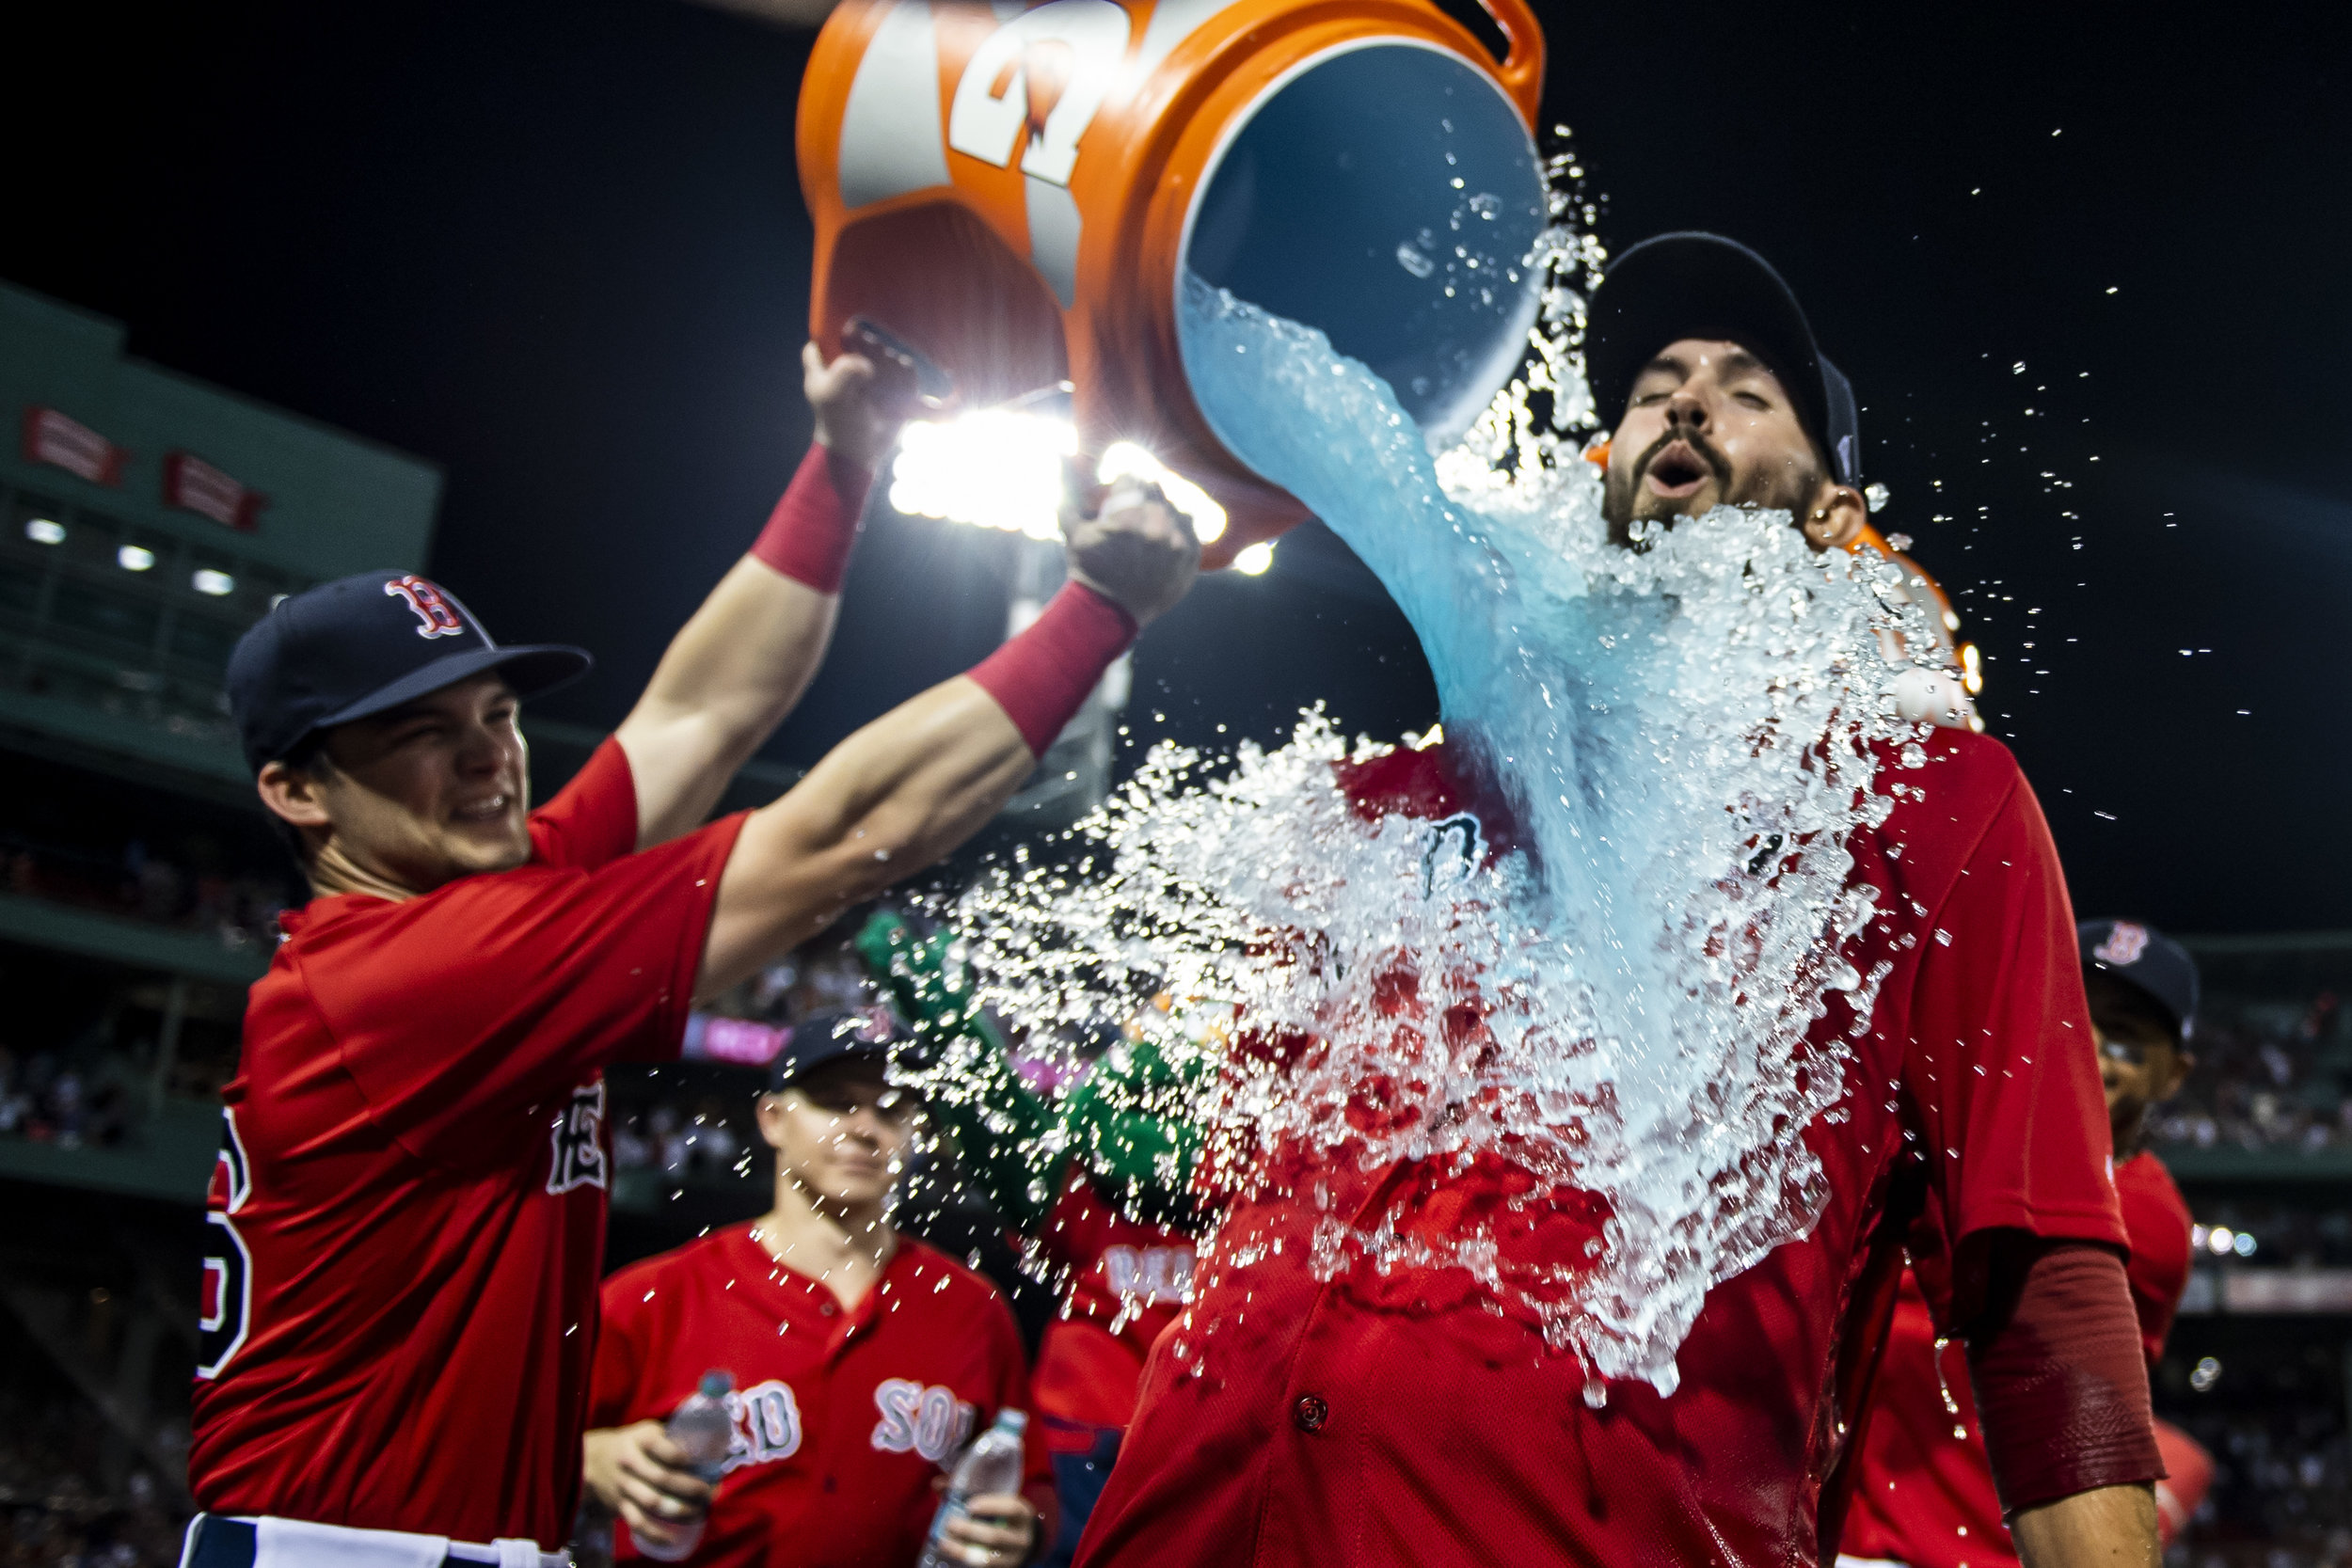 August 3, 2018, Boston, MA: Boston Red Sox outfielder Andrew Benintendi dumps a cooler of Gatorade on Boston Red Sox pitcher Rick Porcello after he pitched the complete game after the Boston Red Sox defeated the New York Yankees at Fenway Park in Boston, Massachusetts on Friday, August 3, 2018. (Photo by Matthew Thomas/Boston Red Sox)